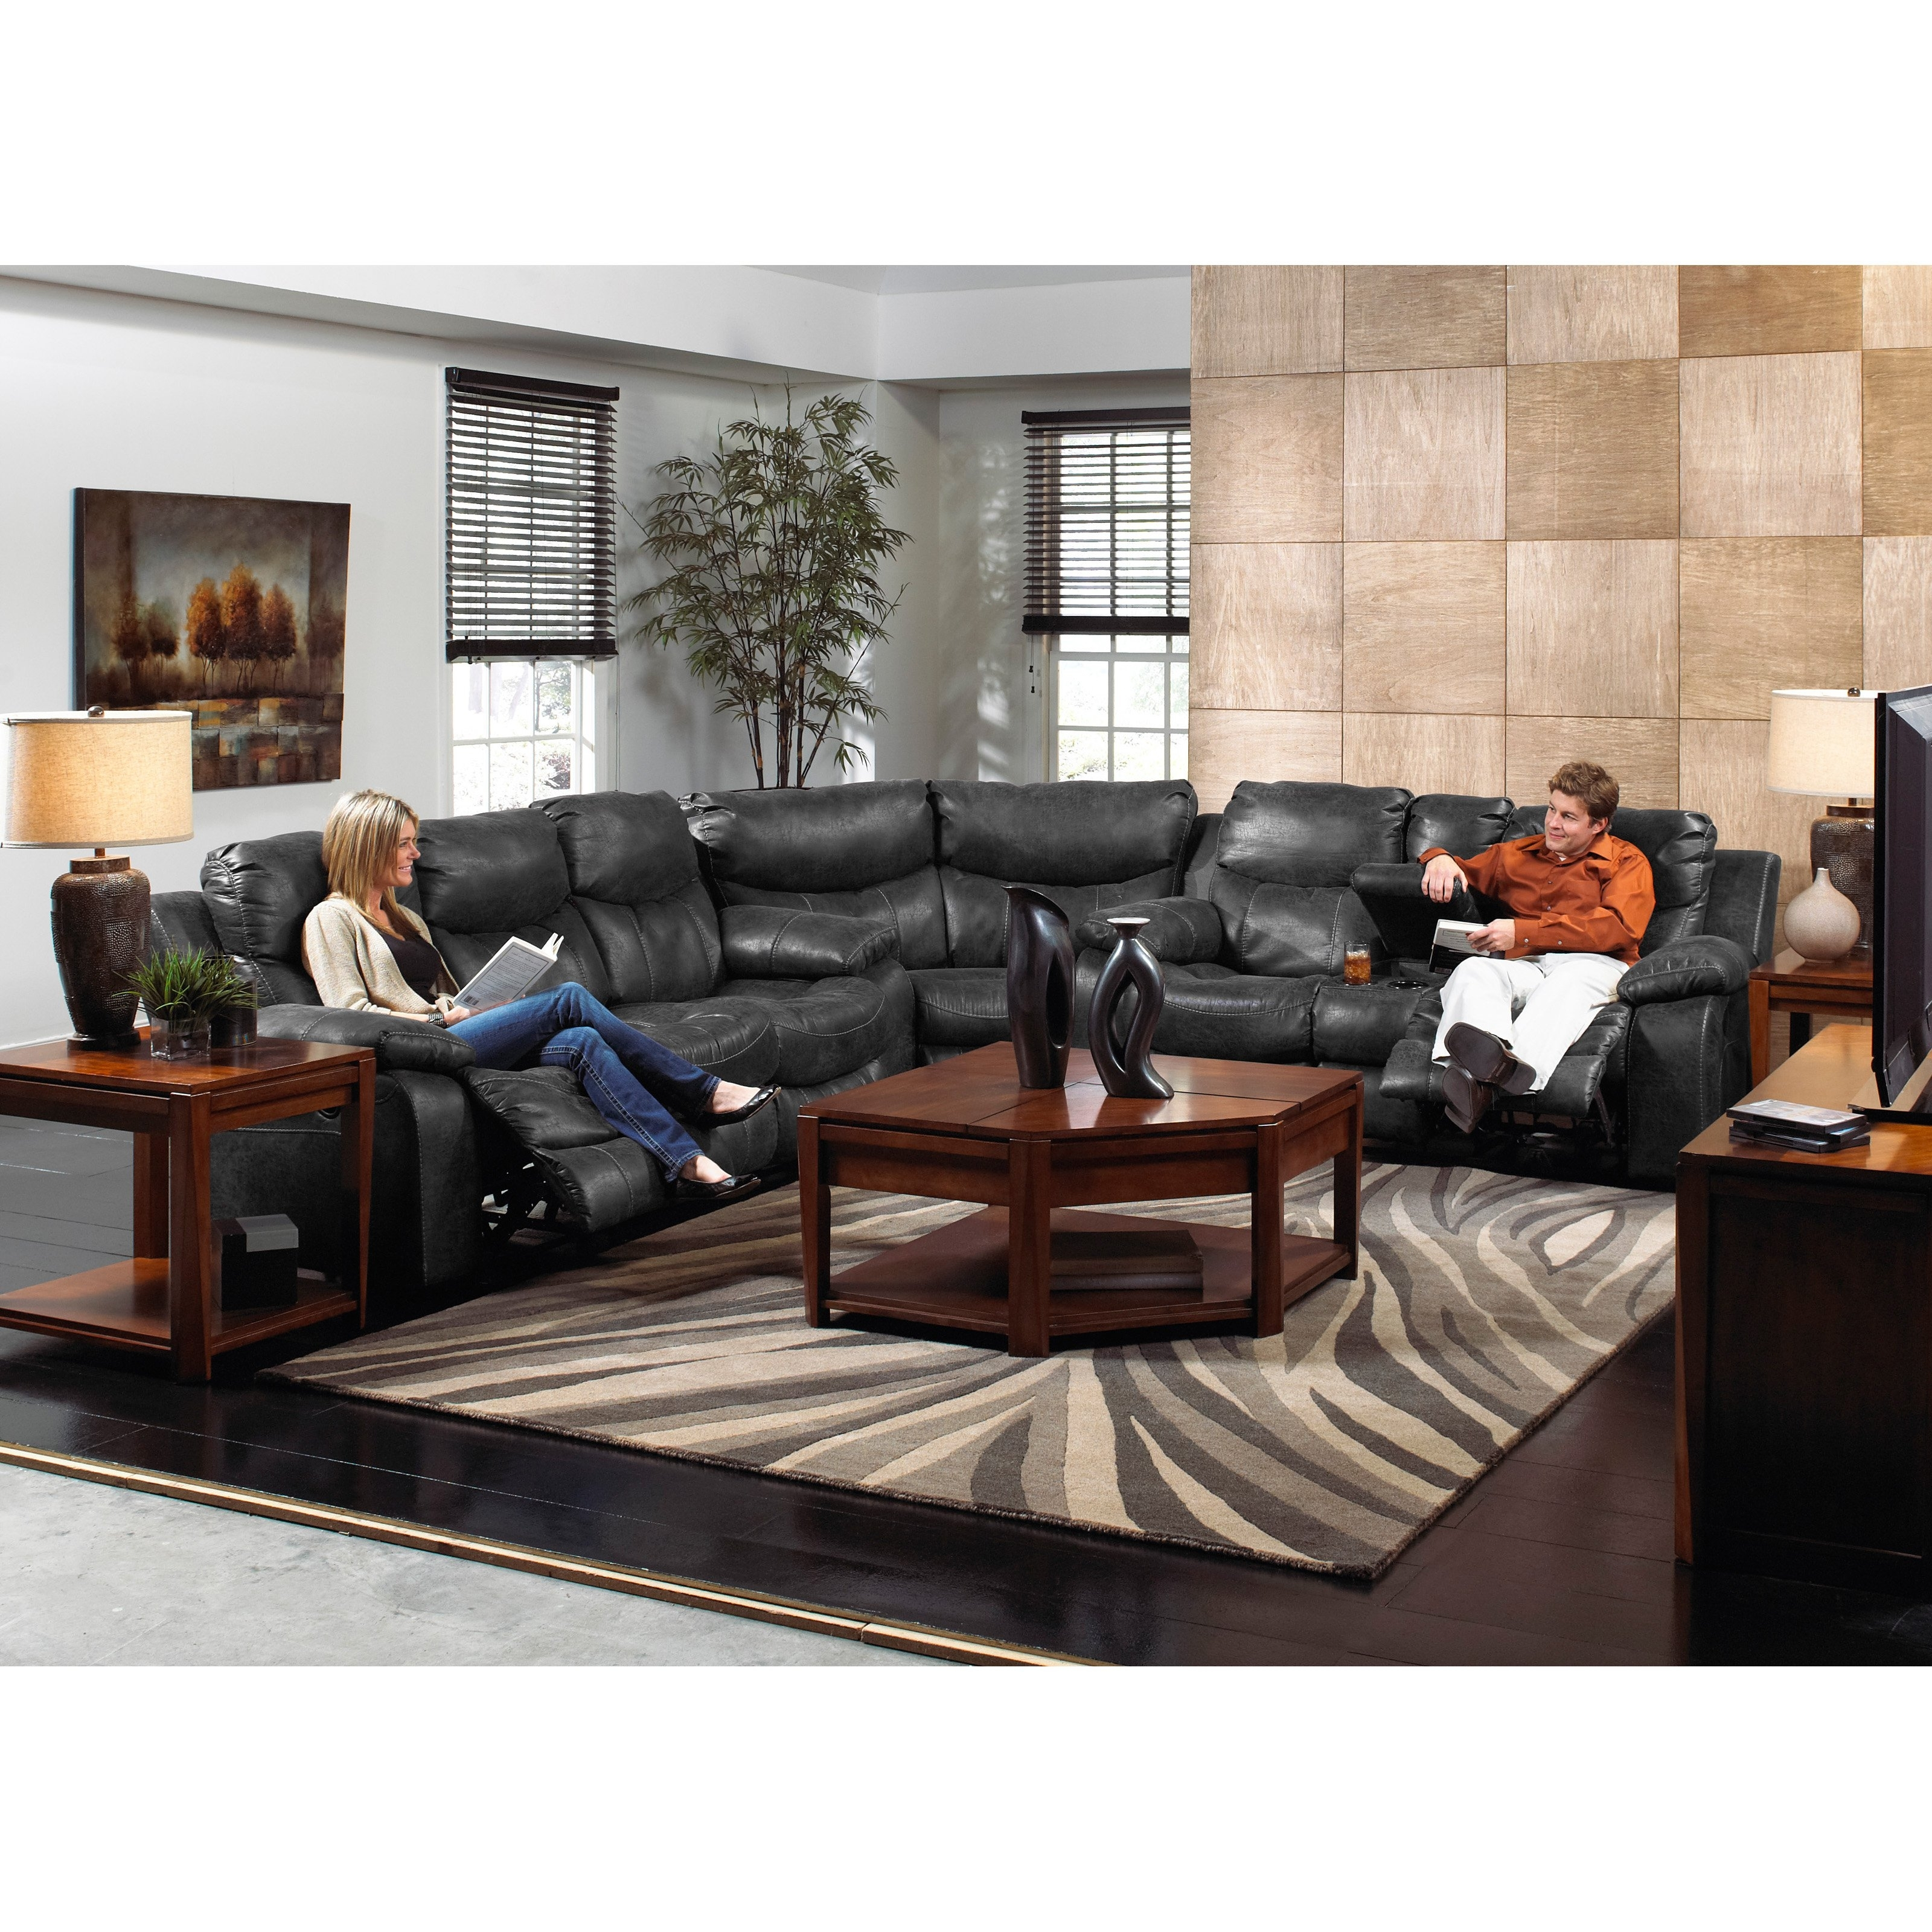 Gray Leather Reclining Sectional Inside Clyde Grey Leather 3 Piece Power Reclining Sectionals With Pwr Hdrst & Usb (View 21 of 25)